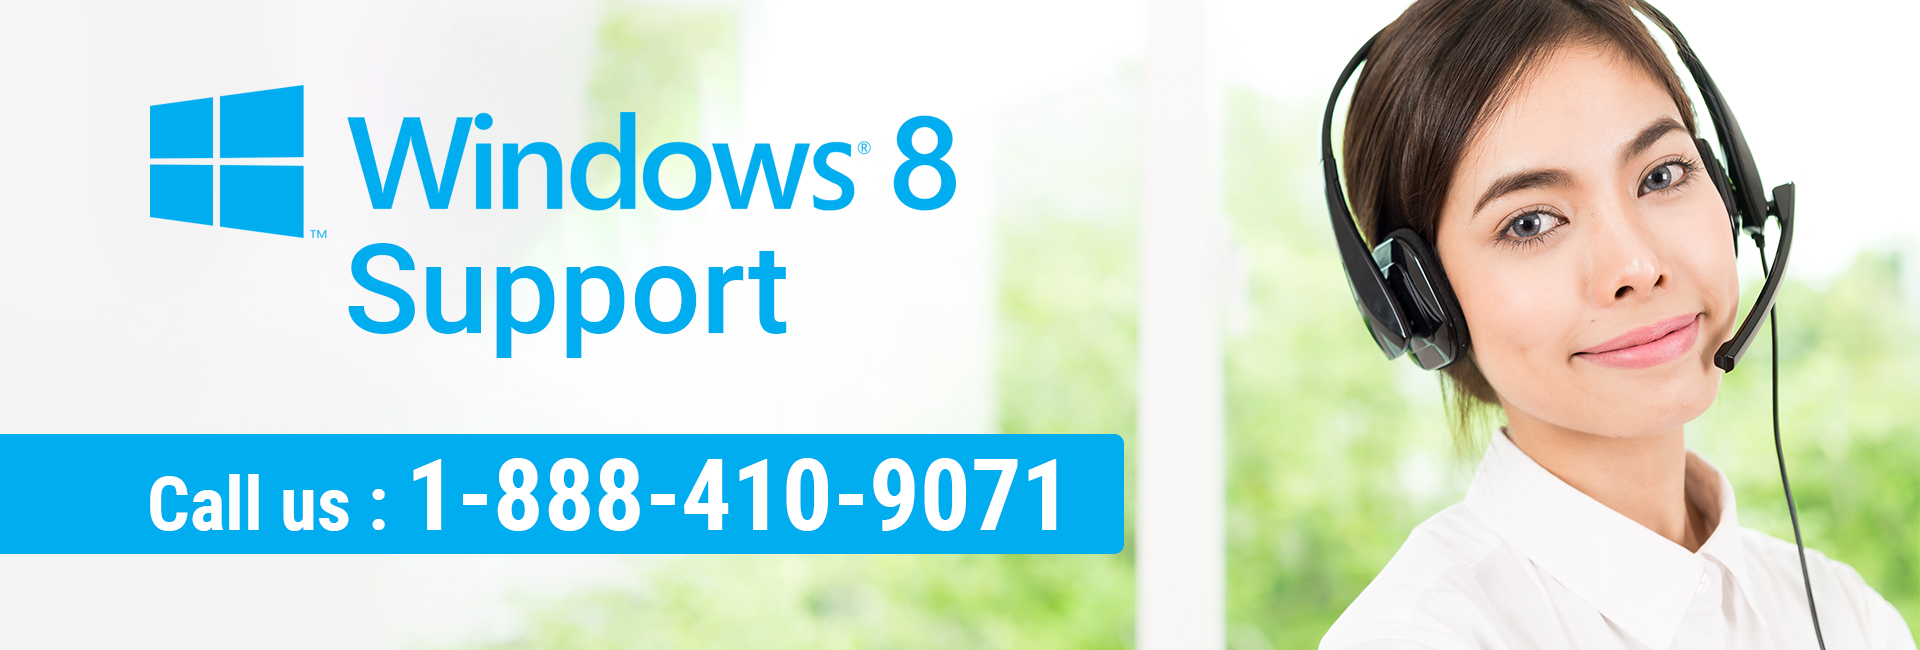 windows 8 Customer Service 1-888-410-9071